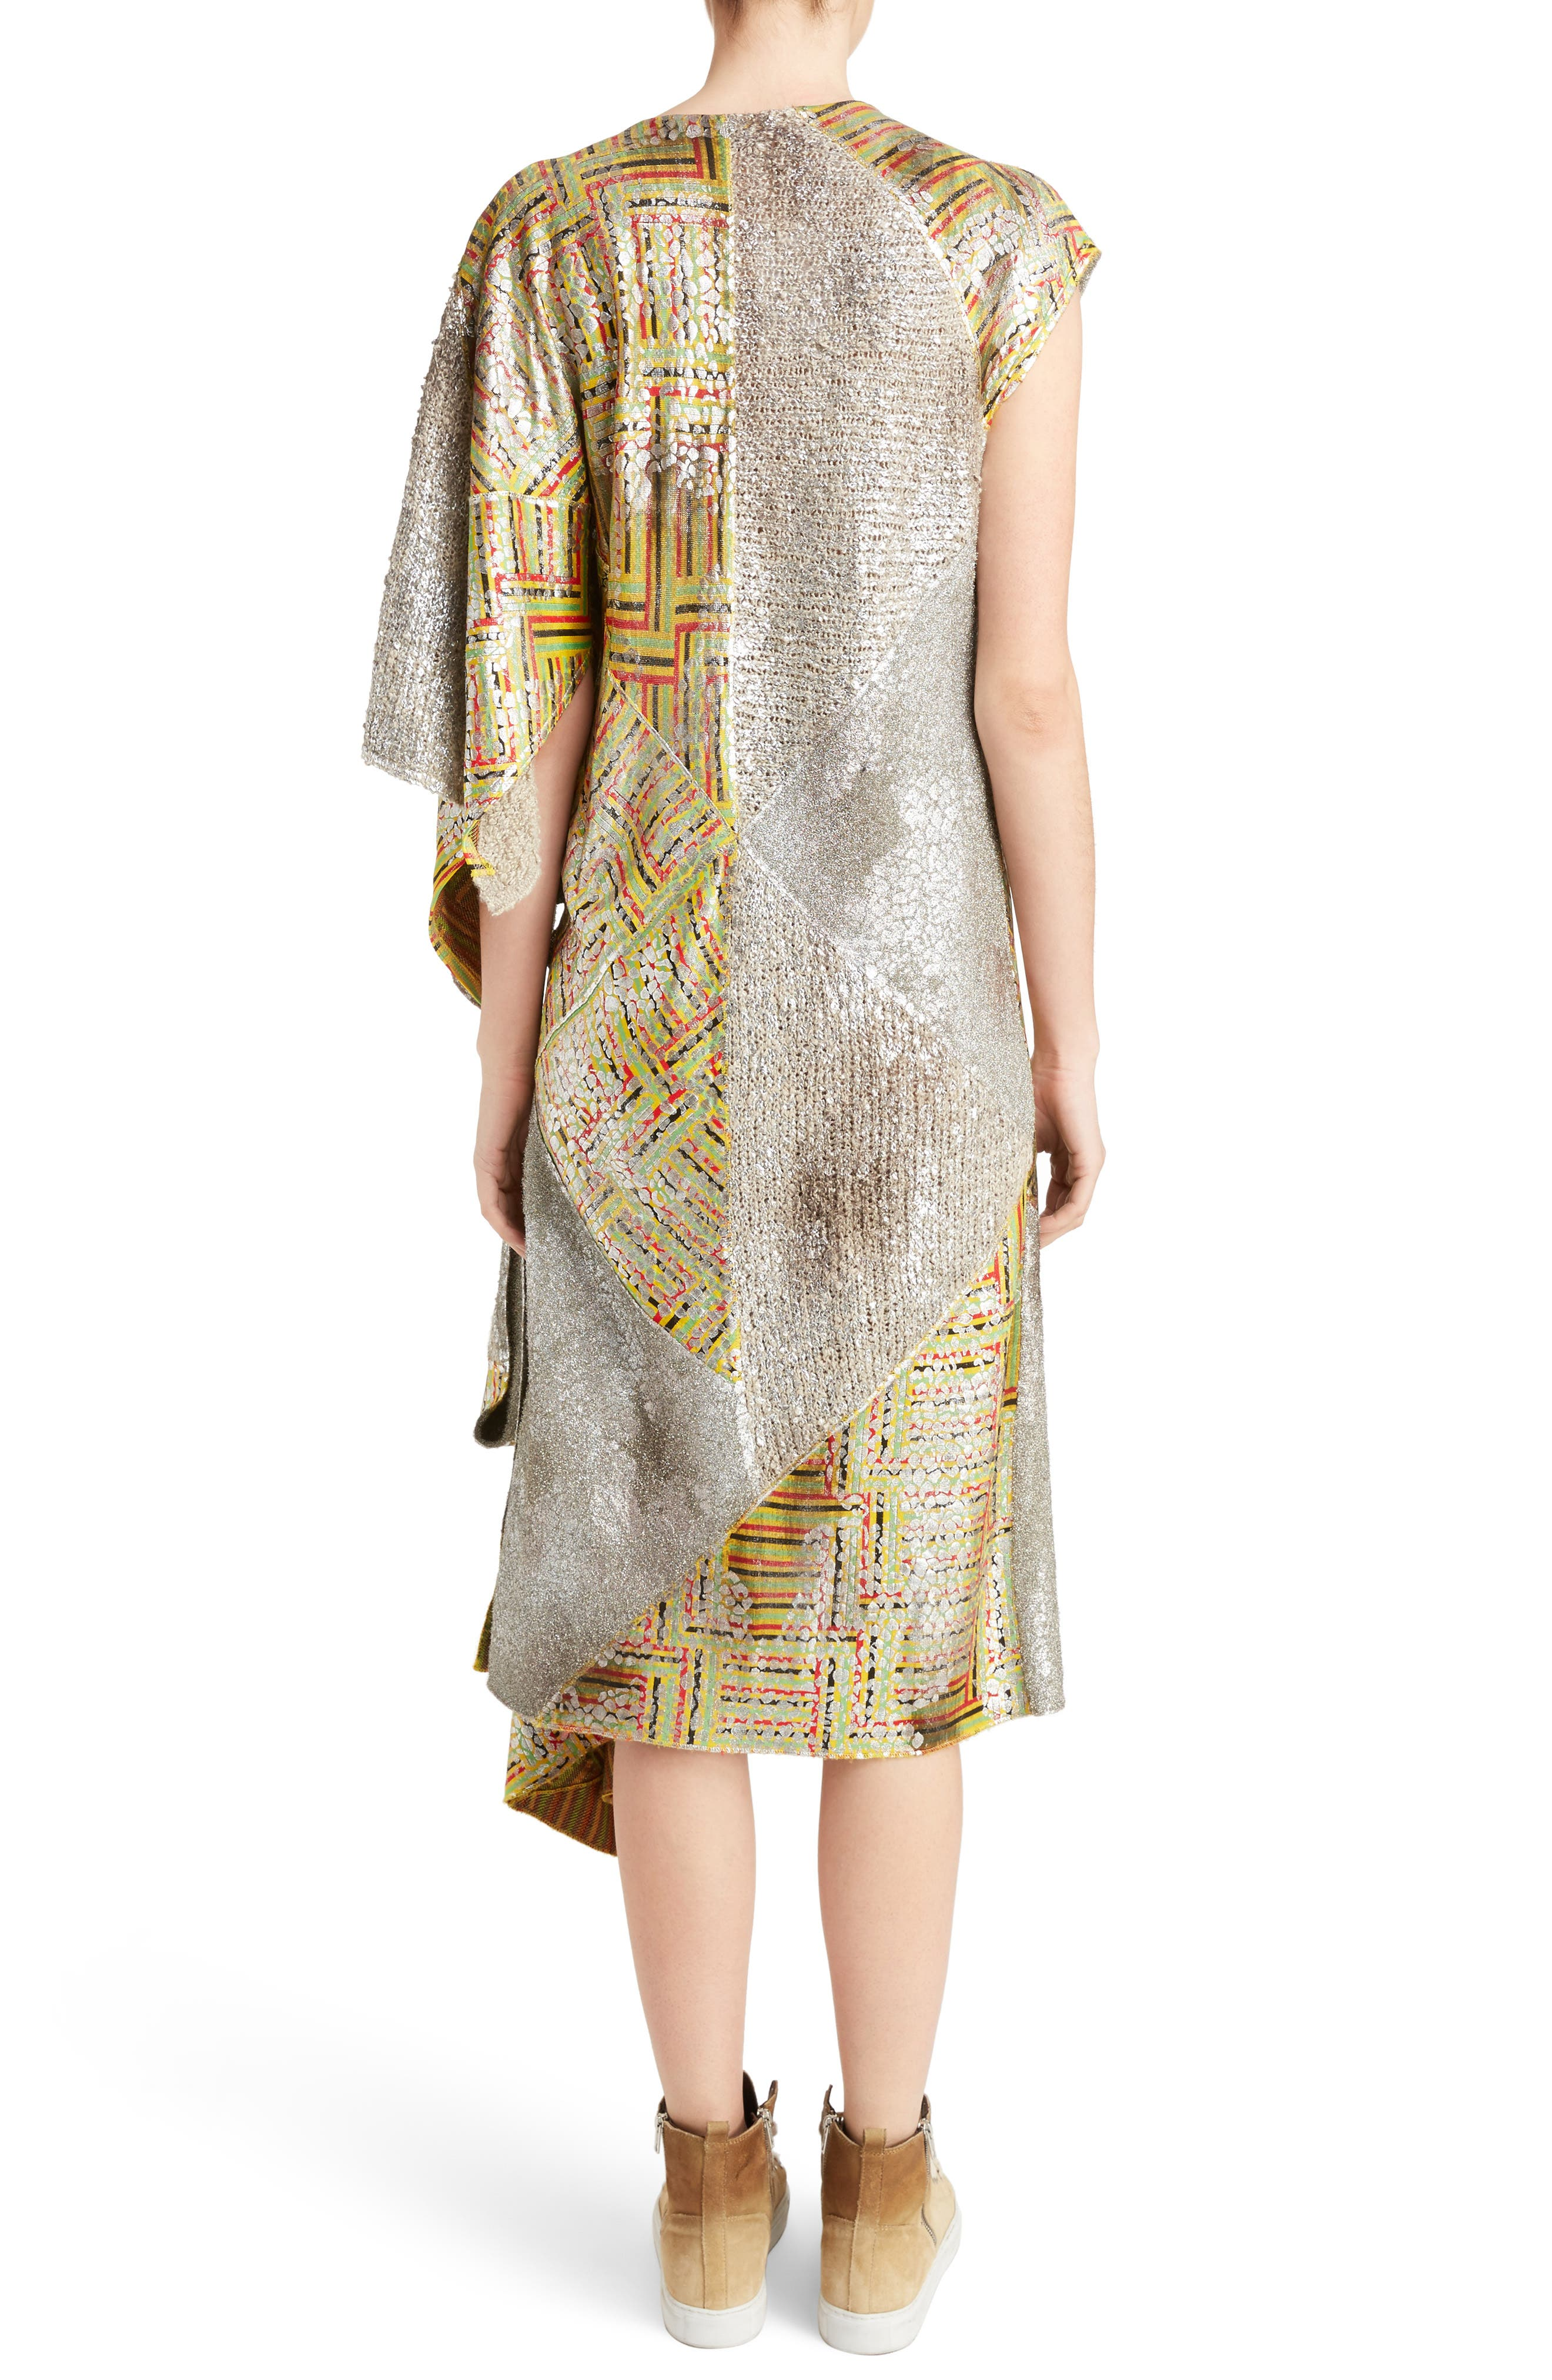 J.W.ANDERSON Geo Patterned Asymmetrical Draped Dress,                             Alternate thumbnail 2, color,                             040